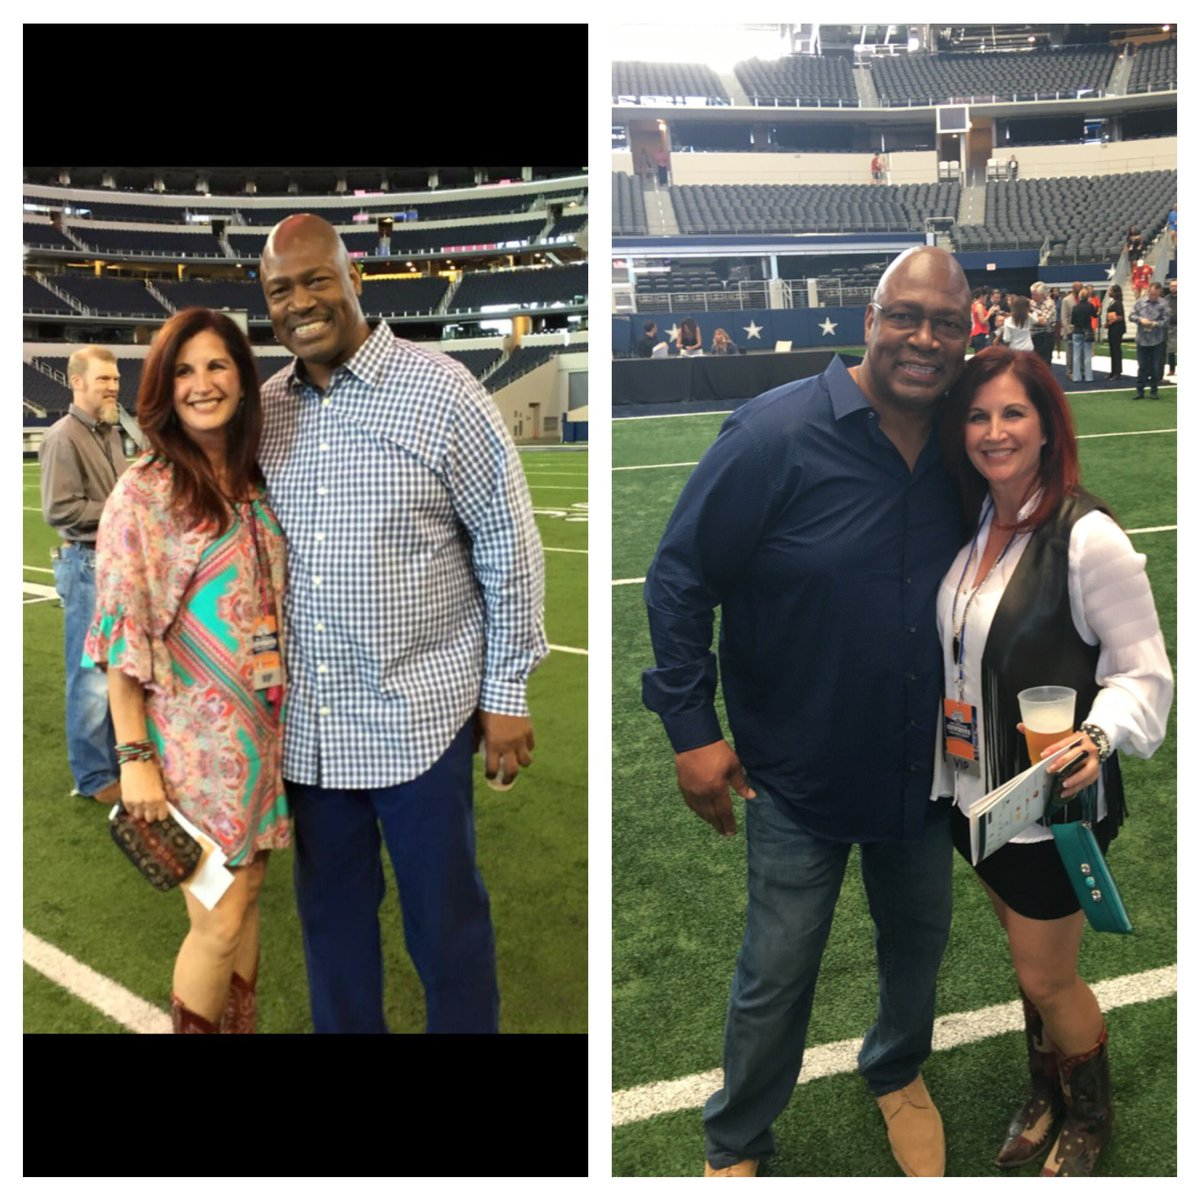 @CharlesHaley94 #TNFLdallas  2015 and 2016 https://t.co/fHT8xvnDUW